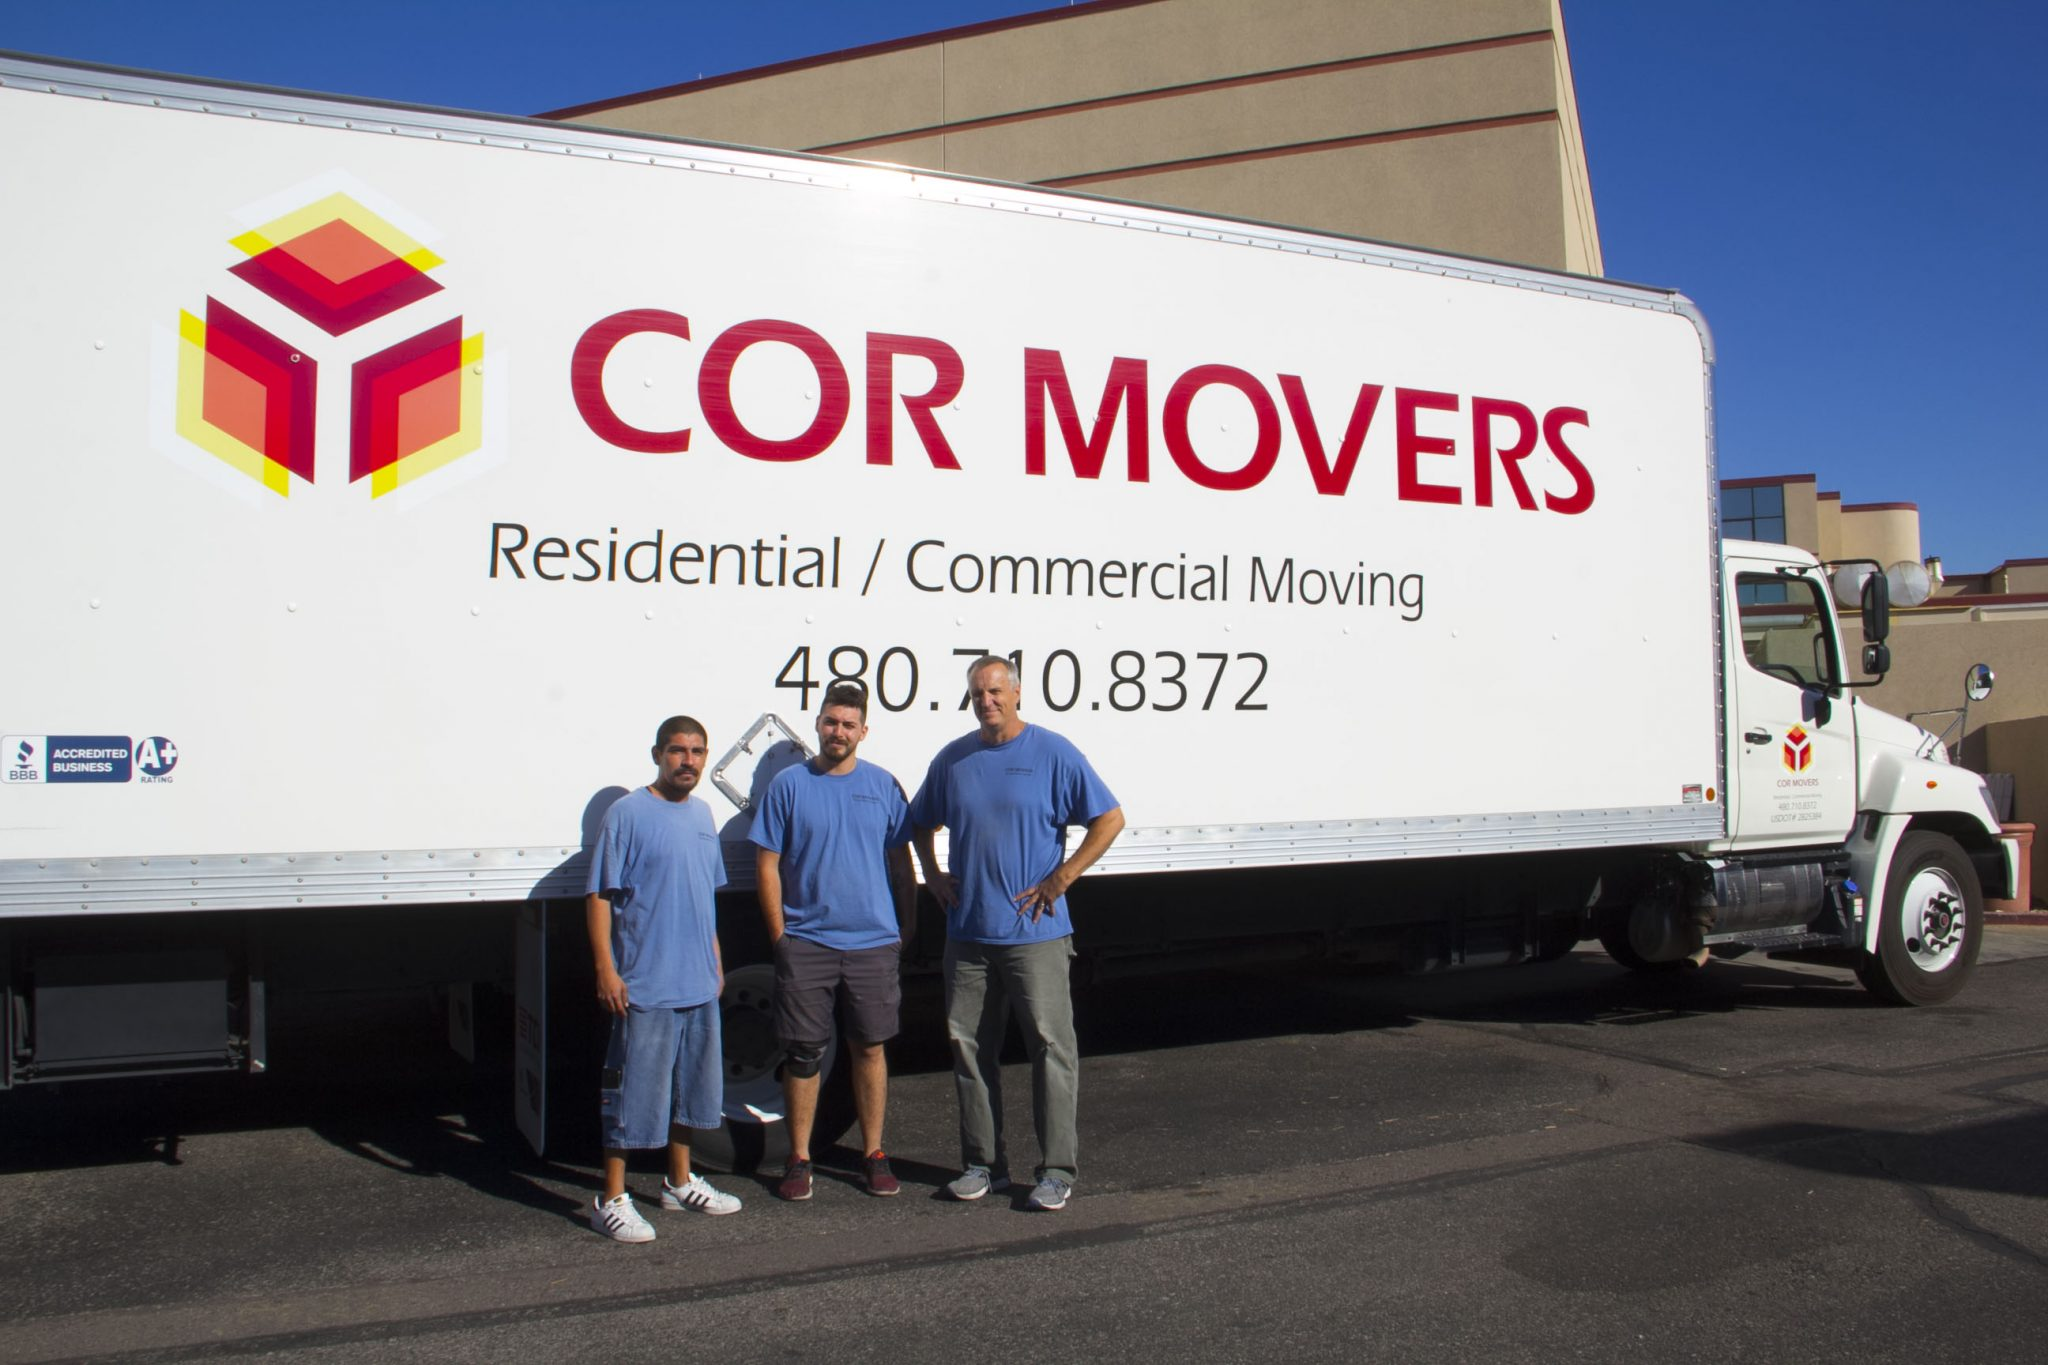 moving company in phoenix az moving truck and crew